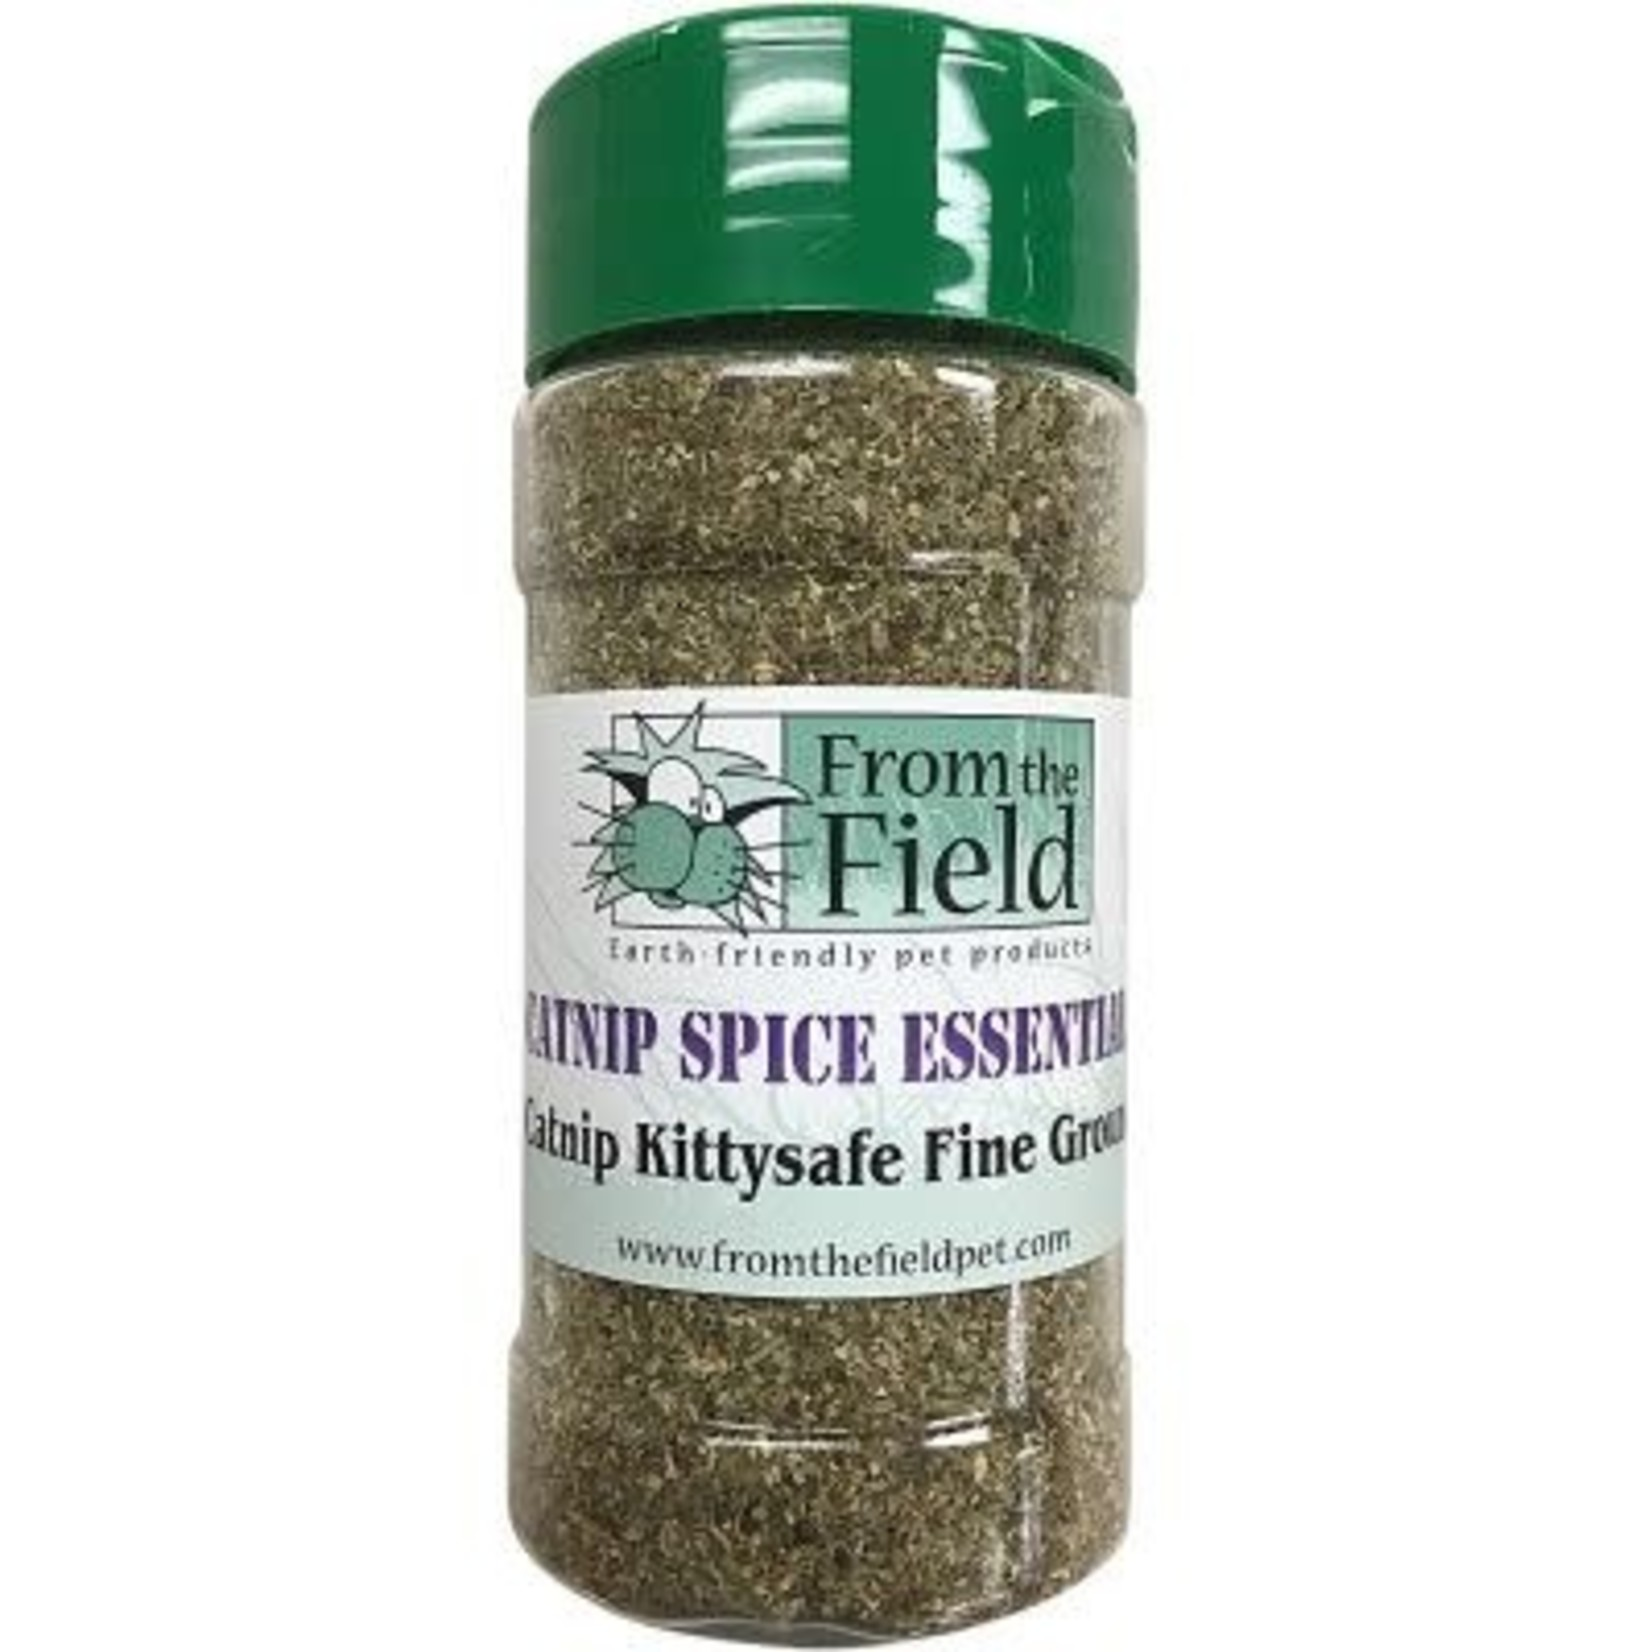 From The Field From The Field Catnip Spice Jar Kitty Safe Stalkless Fine Ground